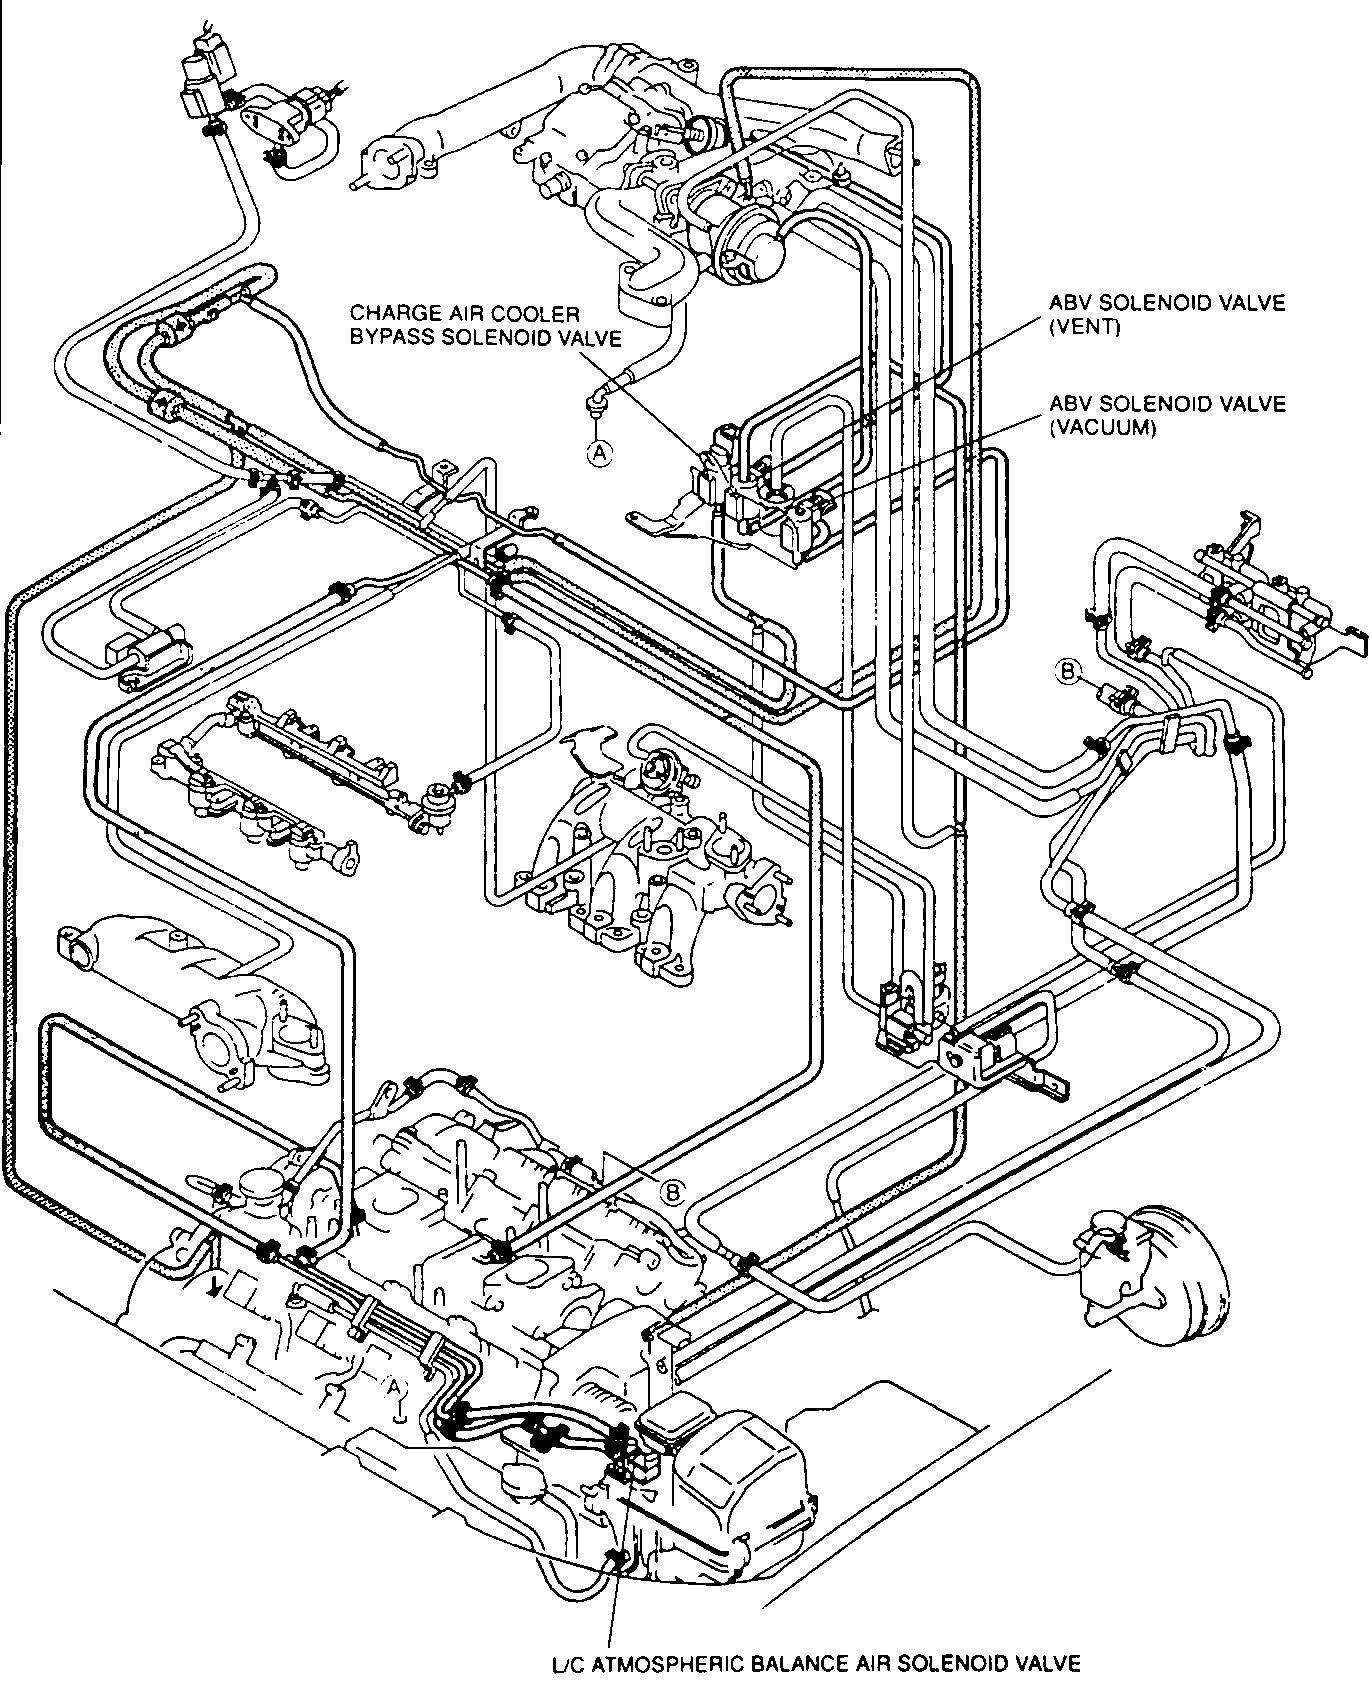 Mazda millenia engine diagram 2001 mazda millenia engine diagram rh detoxicrecenze 2001 mazda millenia engine